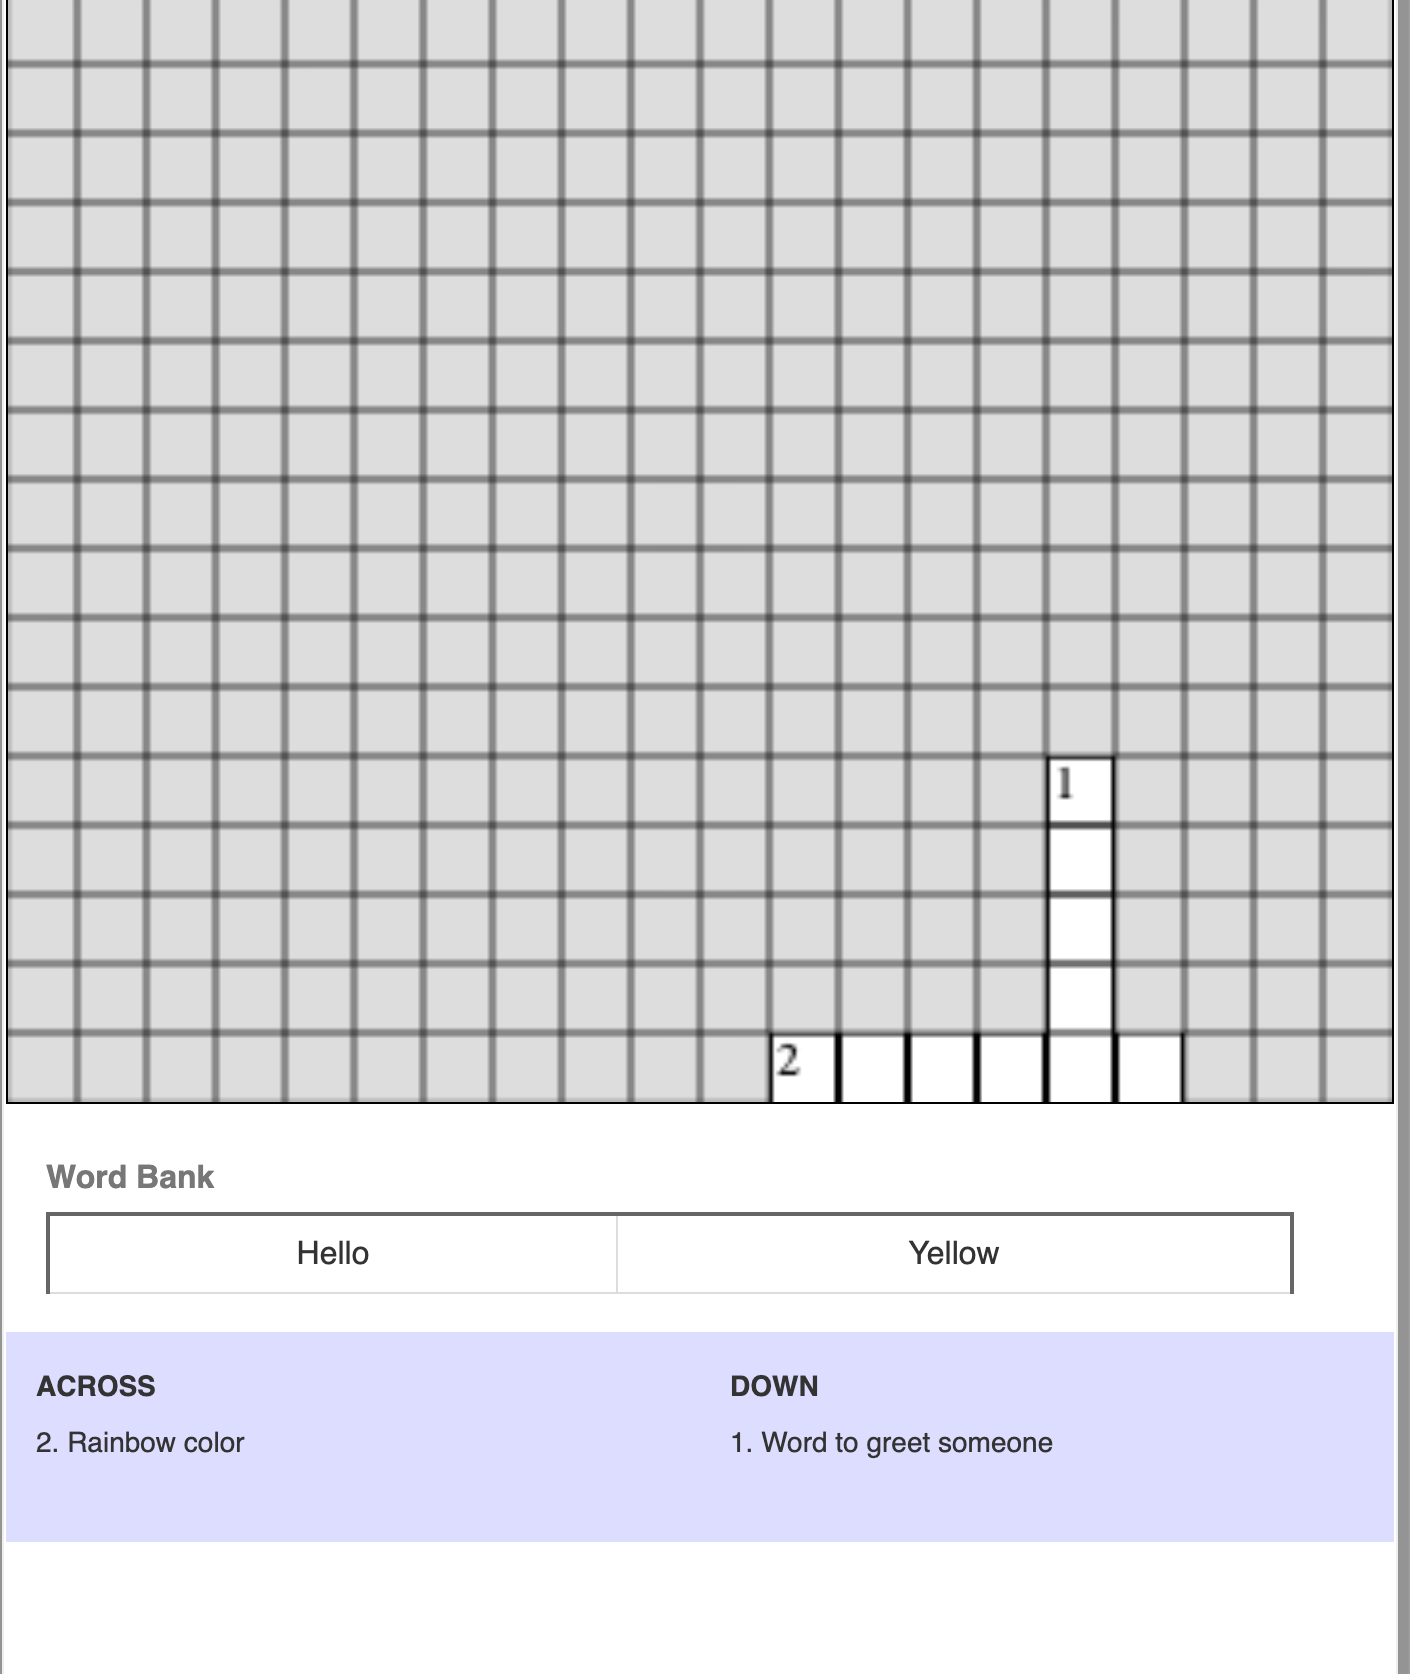 Crossword Worksheet Generator